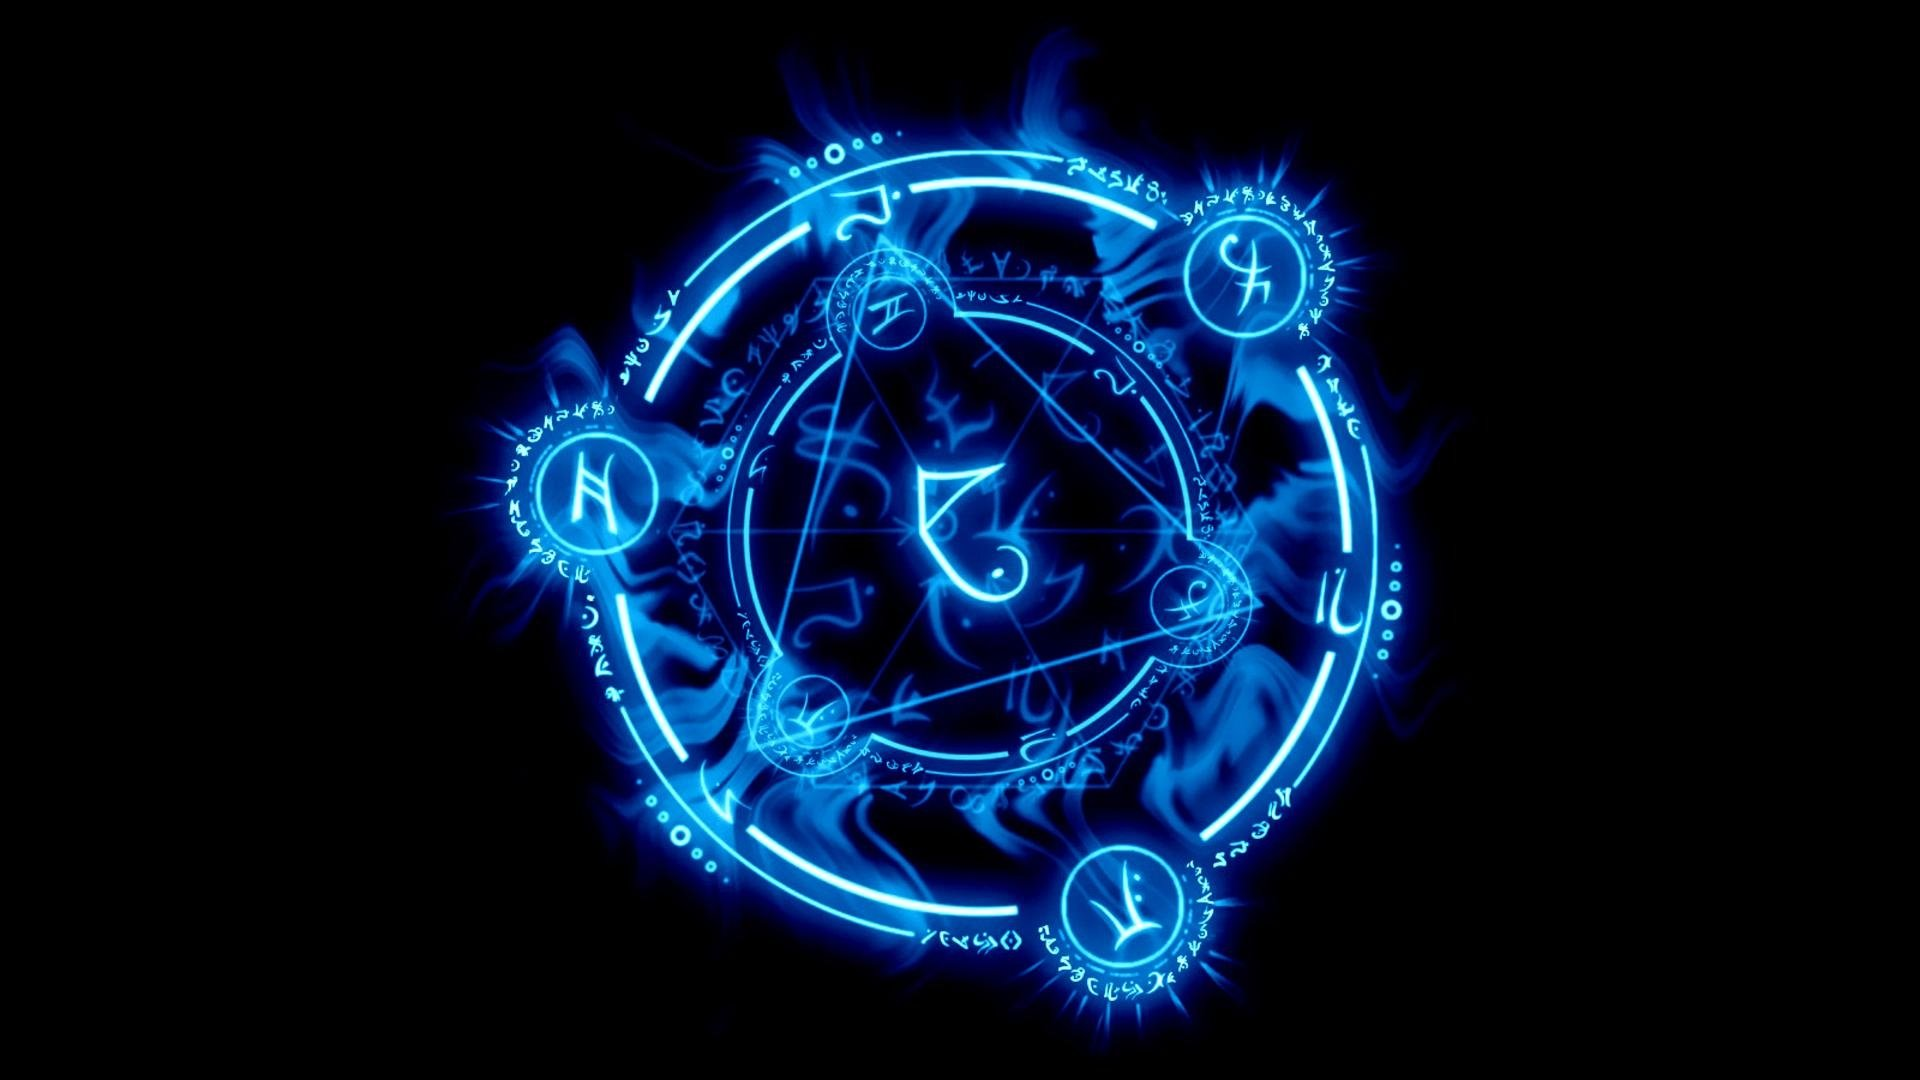 Arcane Circle Hd Wallpaper Background Image 1920x1080